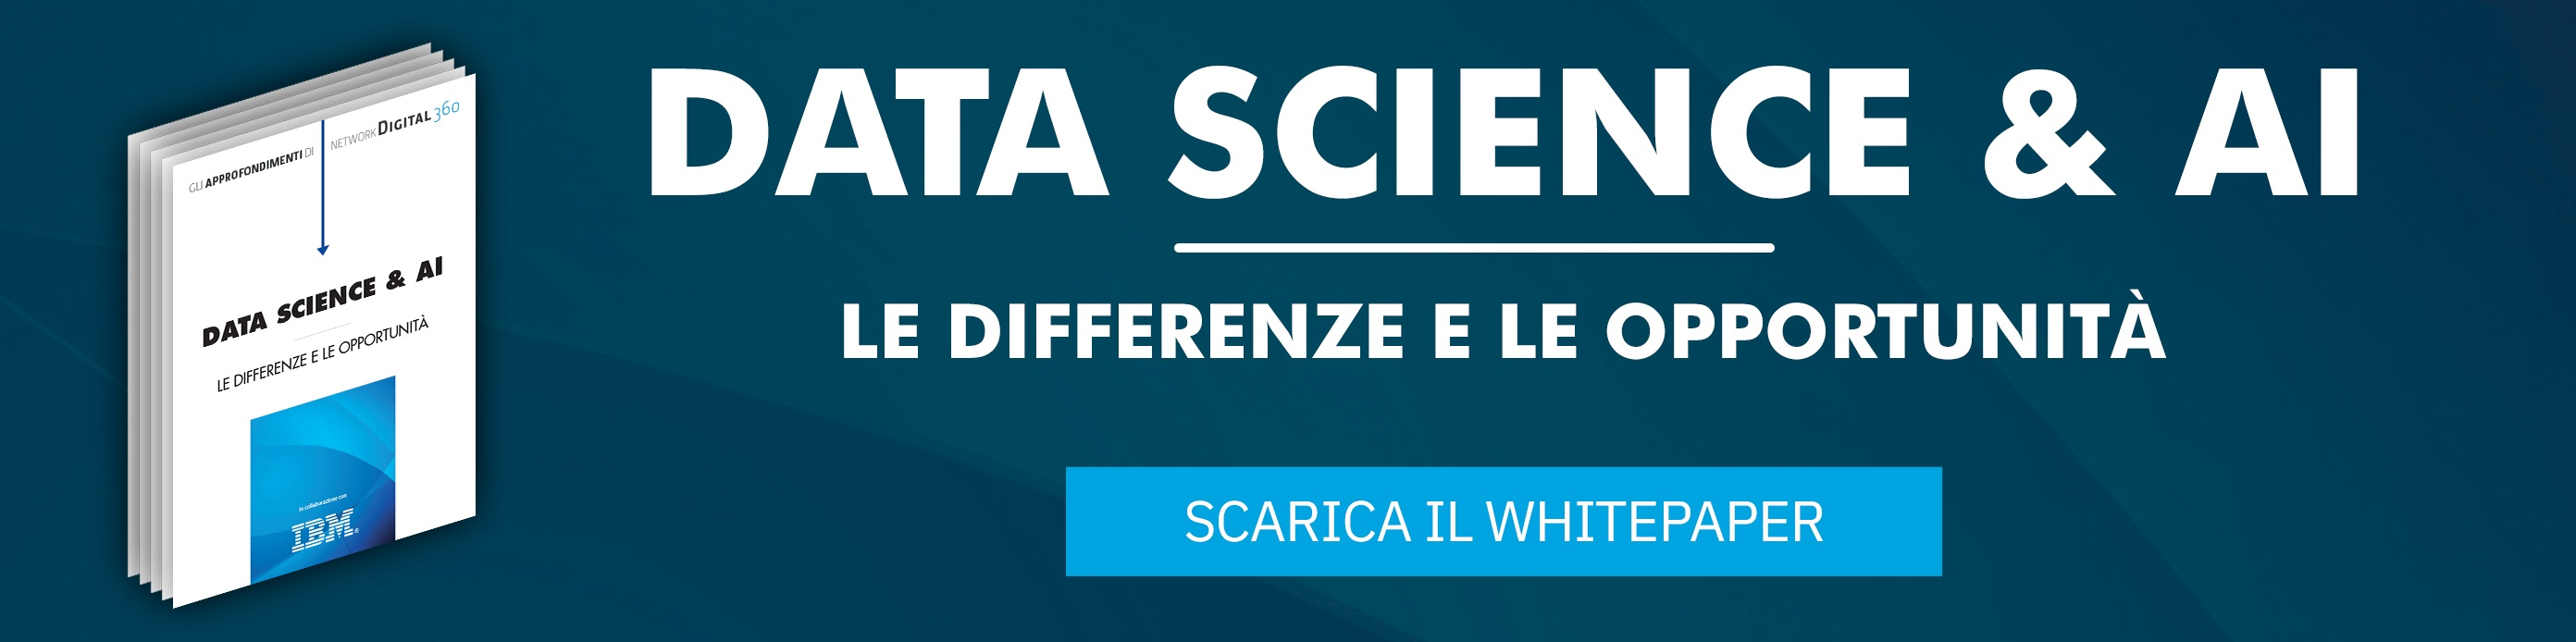 Data Science & AI - Le differenze e le opportunità: Scarica il whitepaper